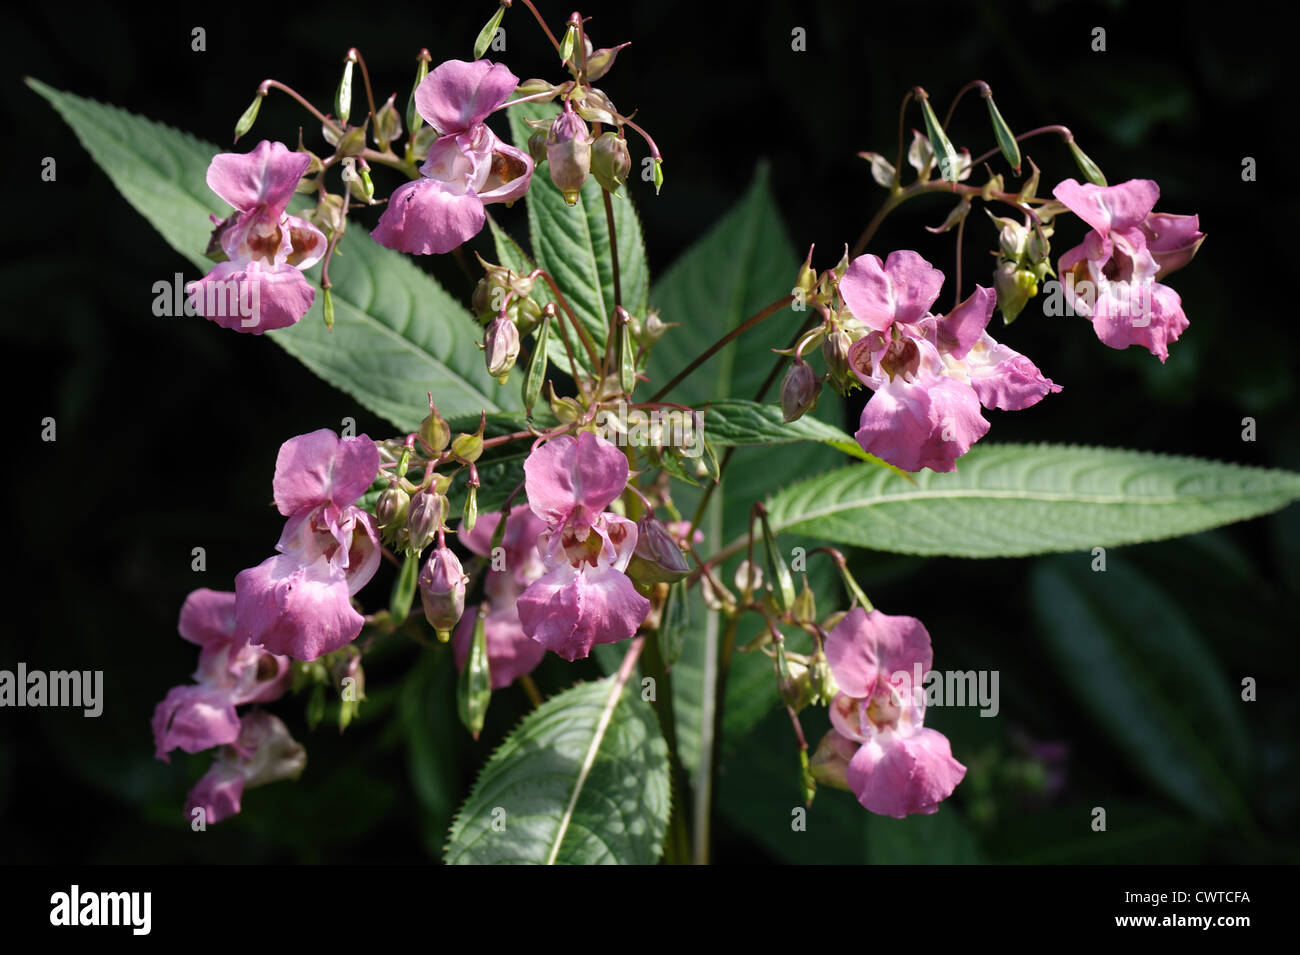 Himalayan balsam (Impatiens gladulifera) flowers, seedpods & leaves against a shadow background Stock Photo